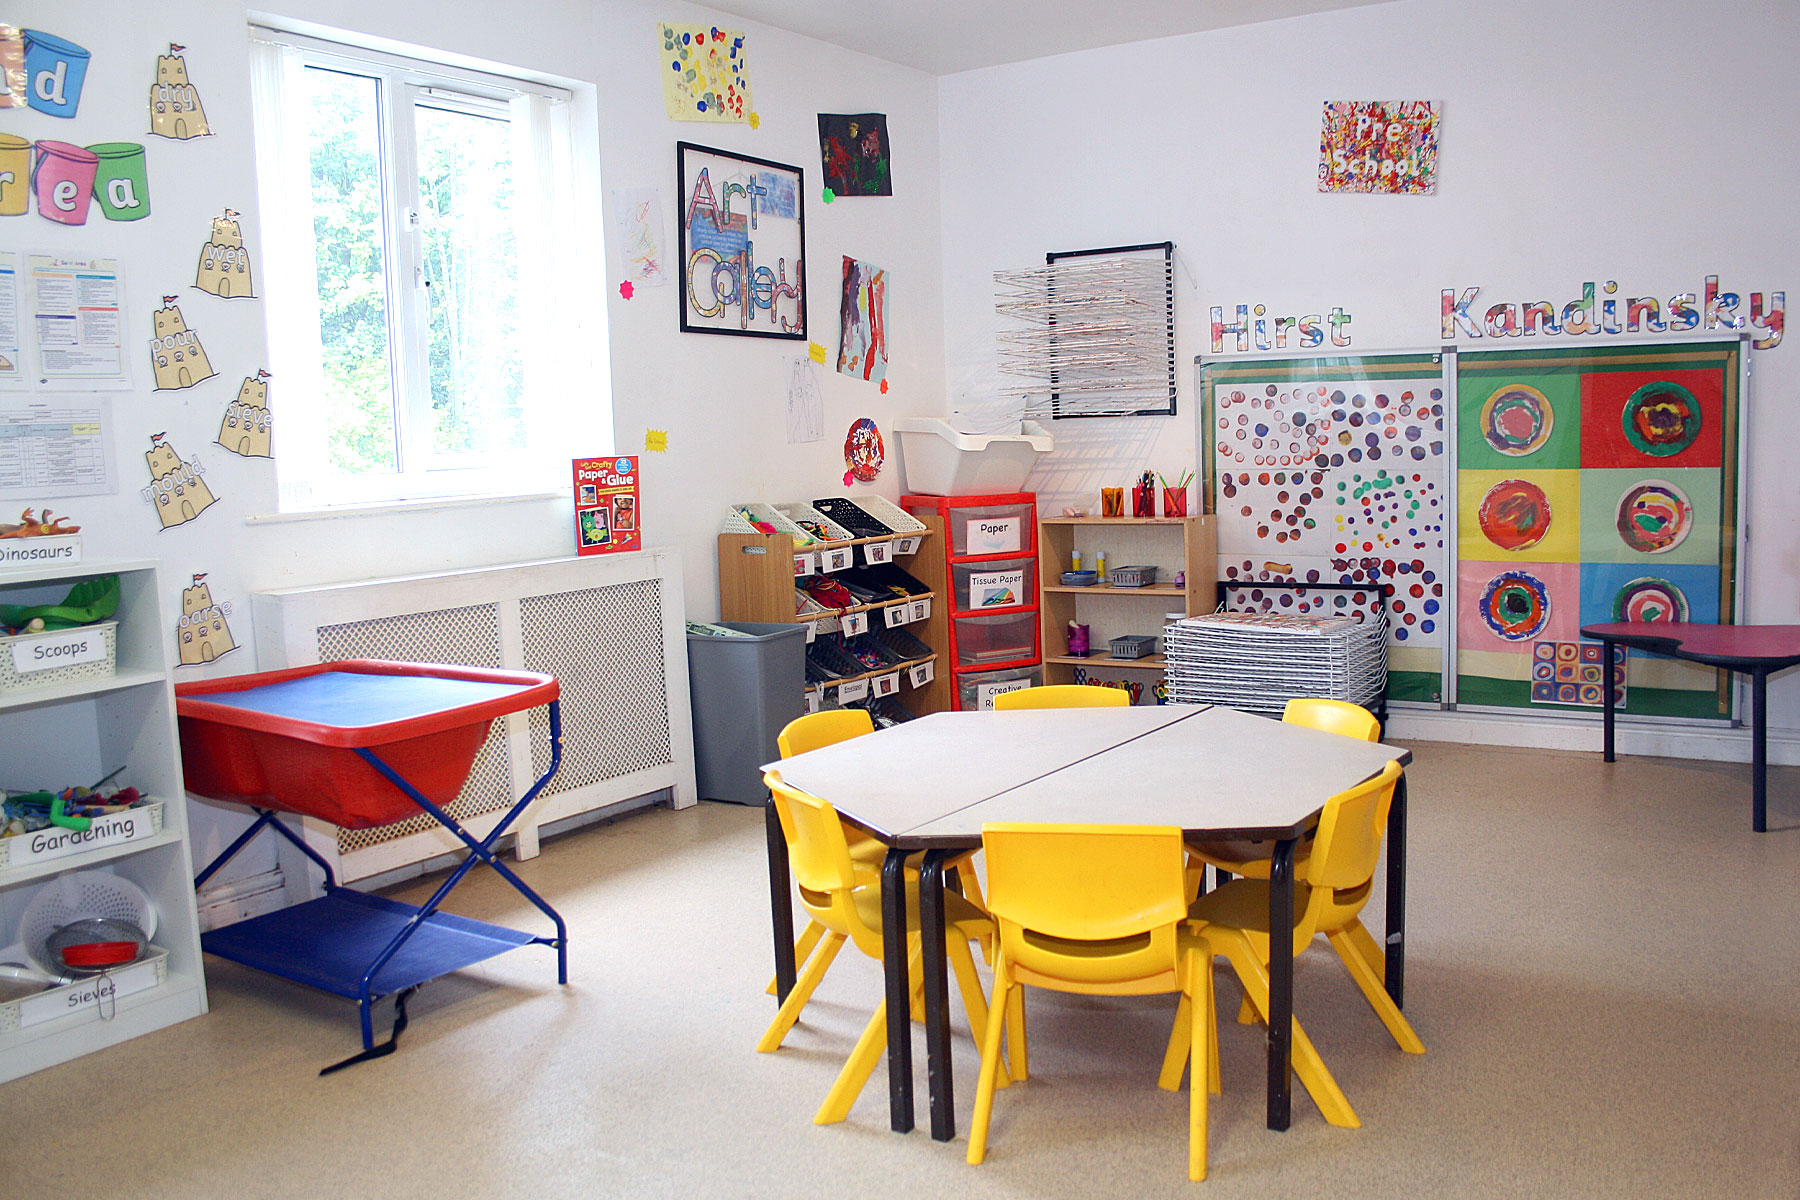 St Joseph's Nursery - Childcare and Pre-School in Barnsley